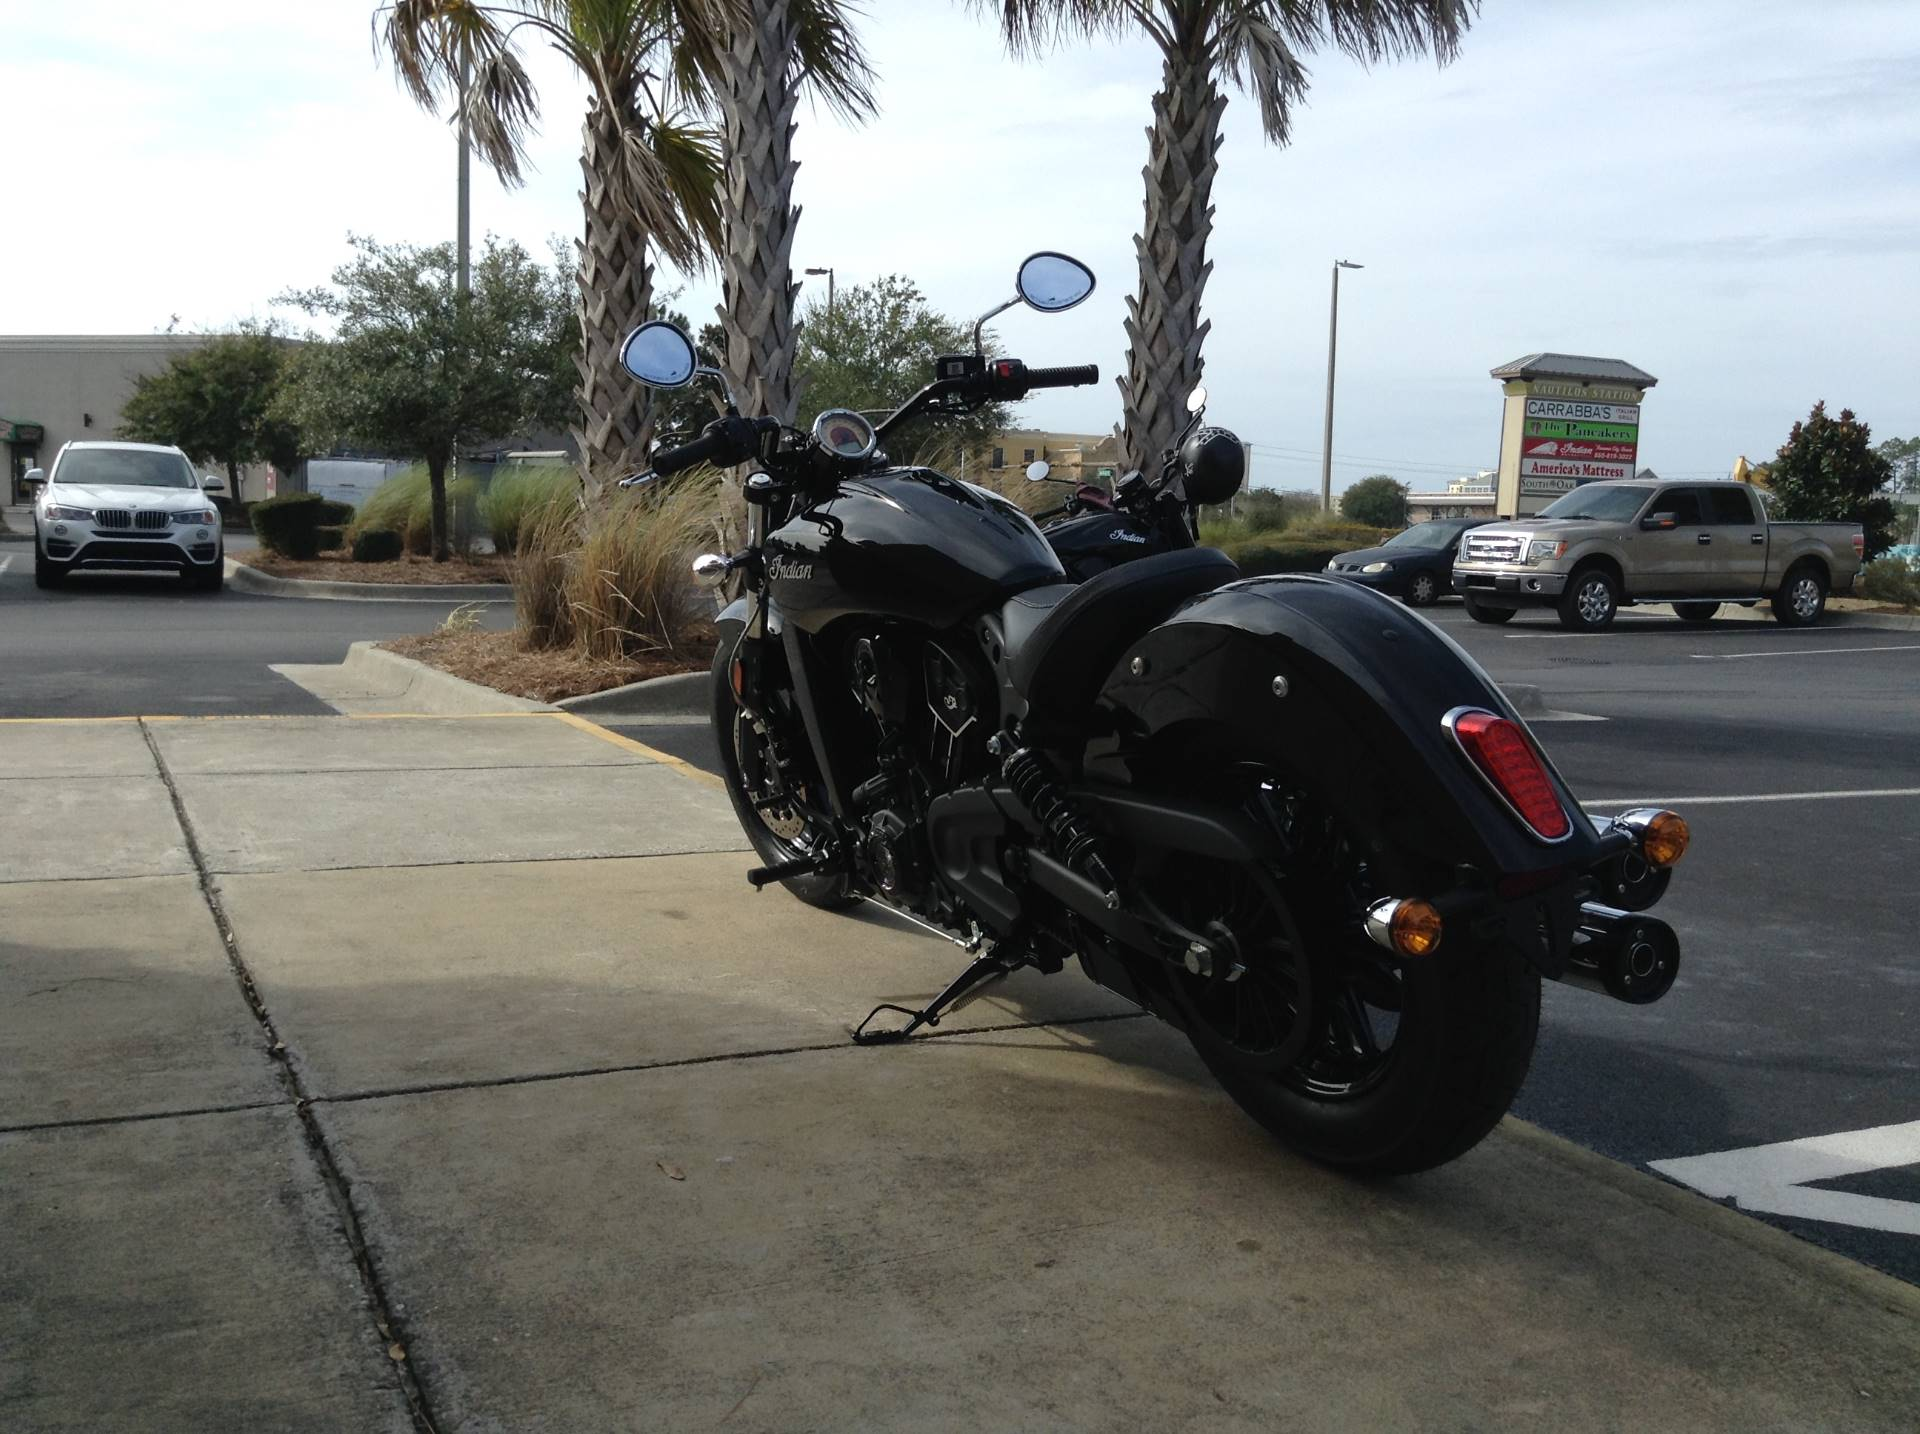 2020 Indian SCOUT 60 in Panama City Beach, Florida - Photo 6